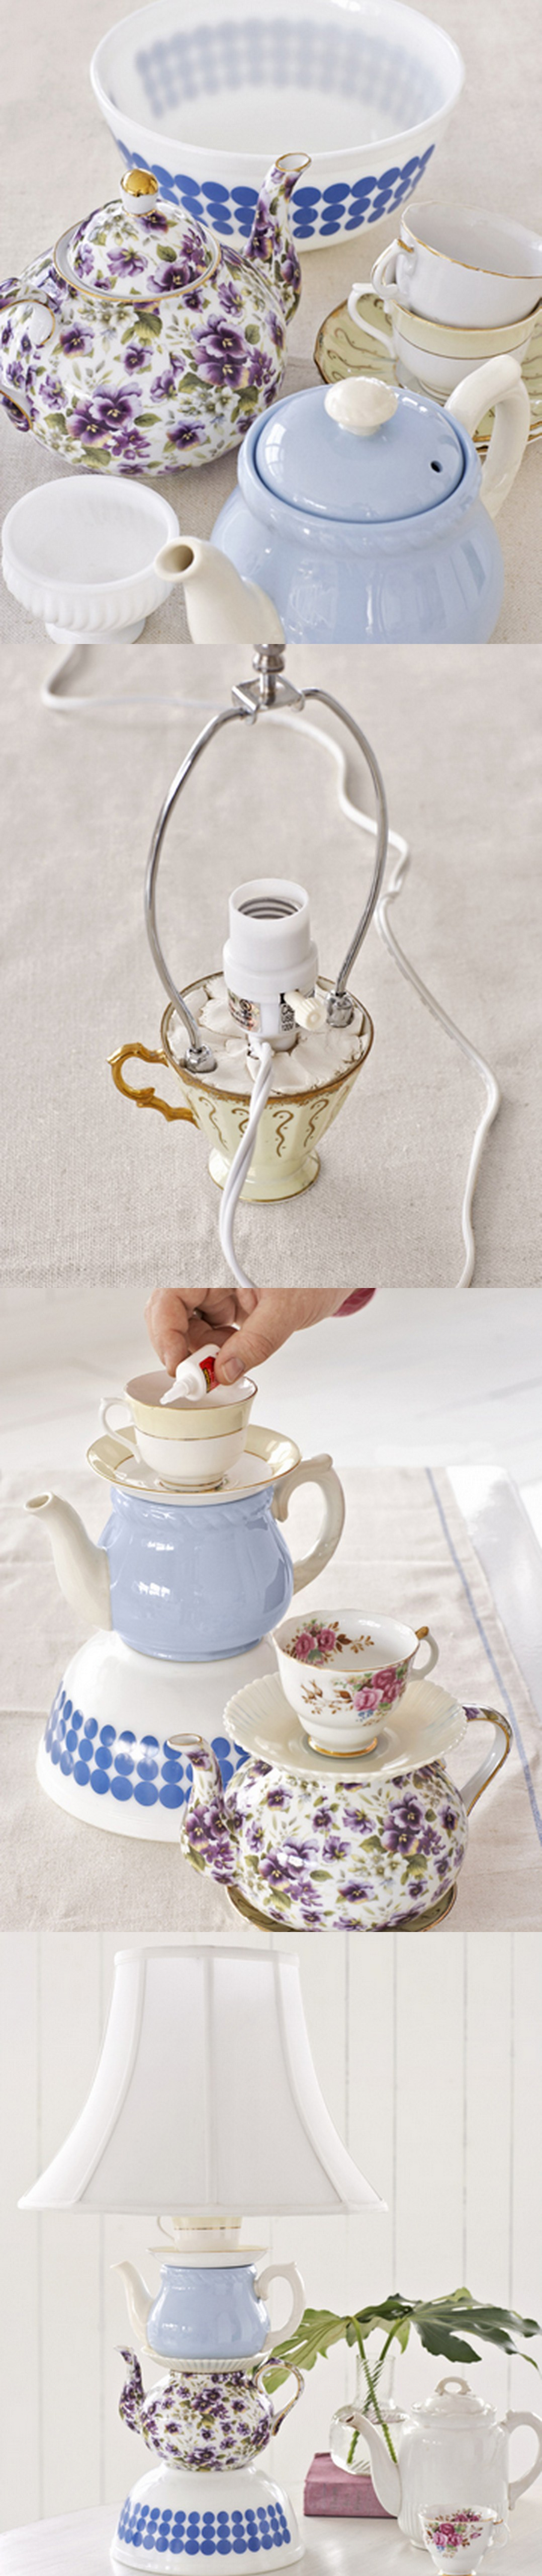 Making Tea In A Teapot Pin By 39valarie 39 Phillips On Tea Cup Collection Teapot